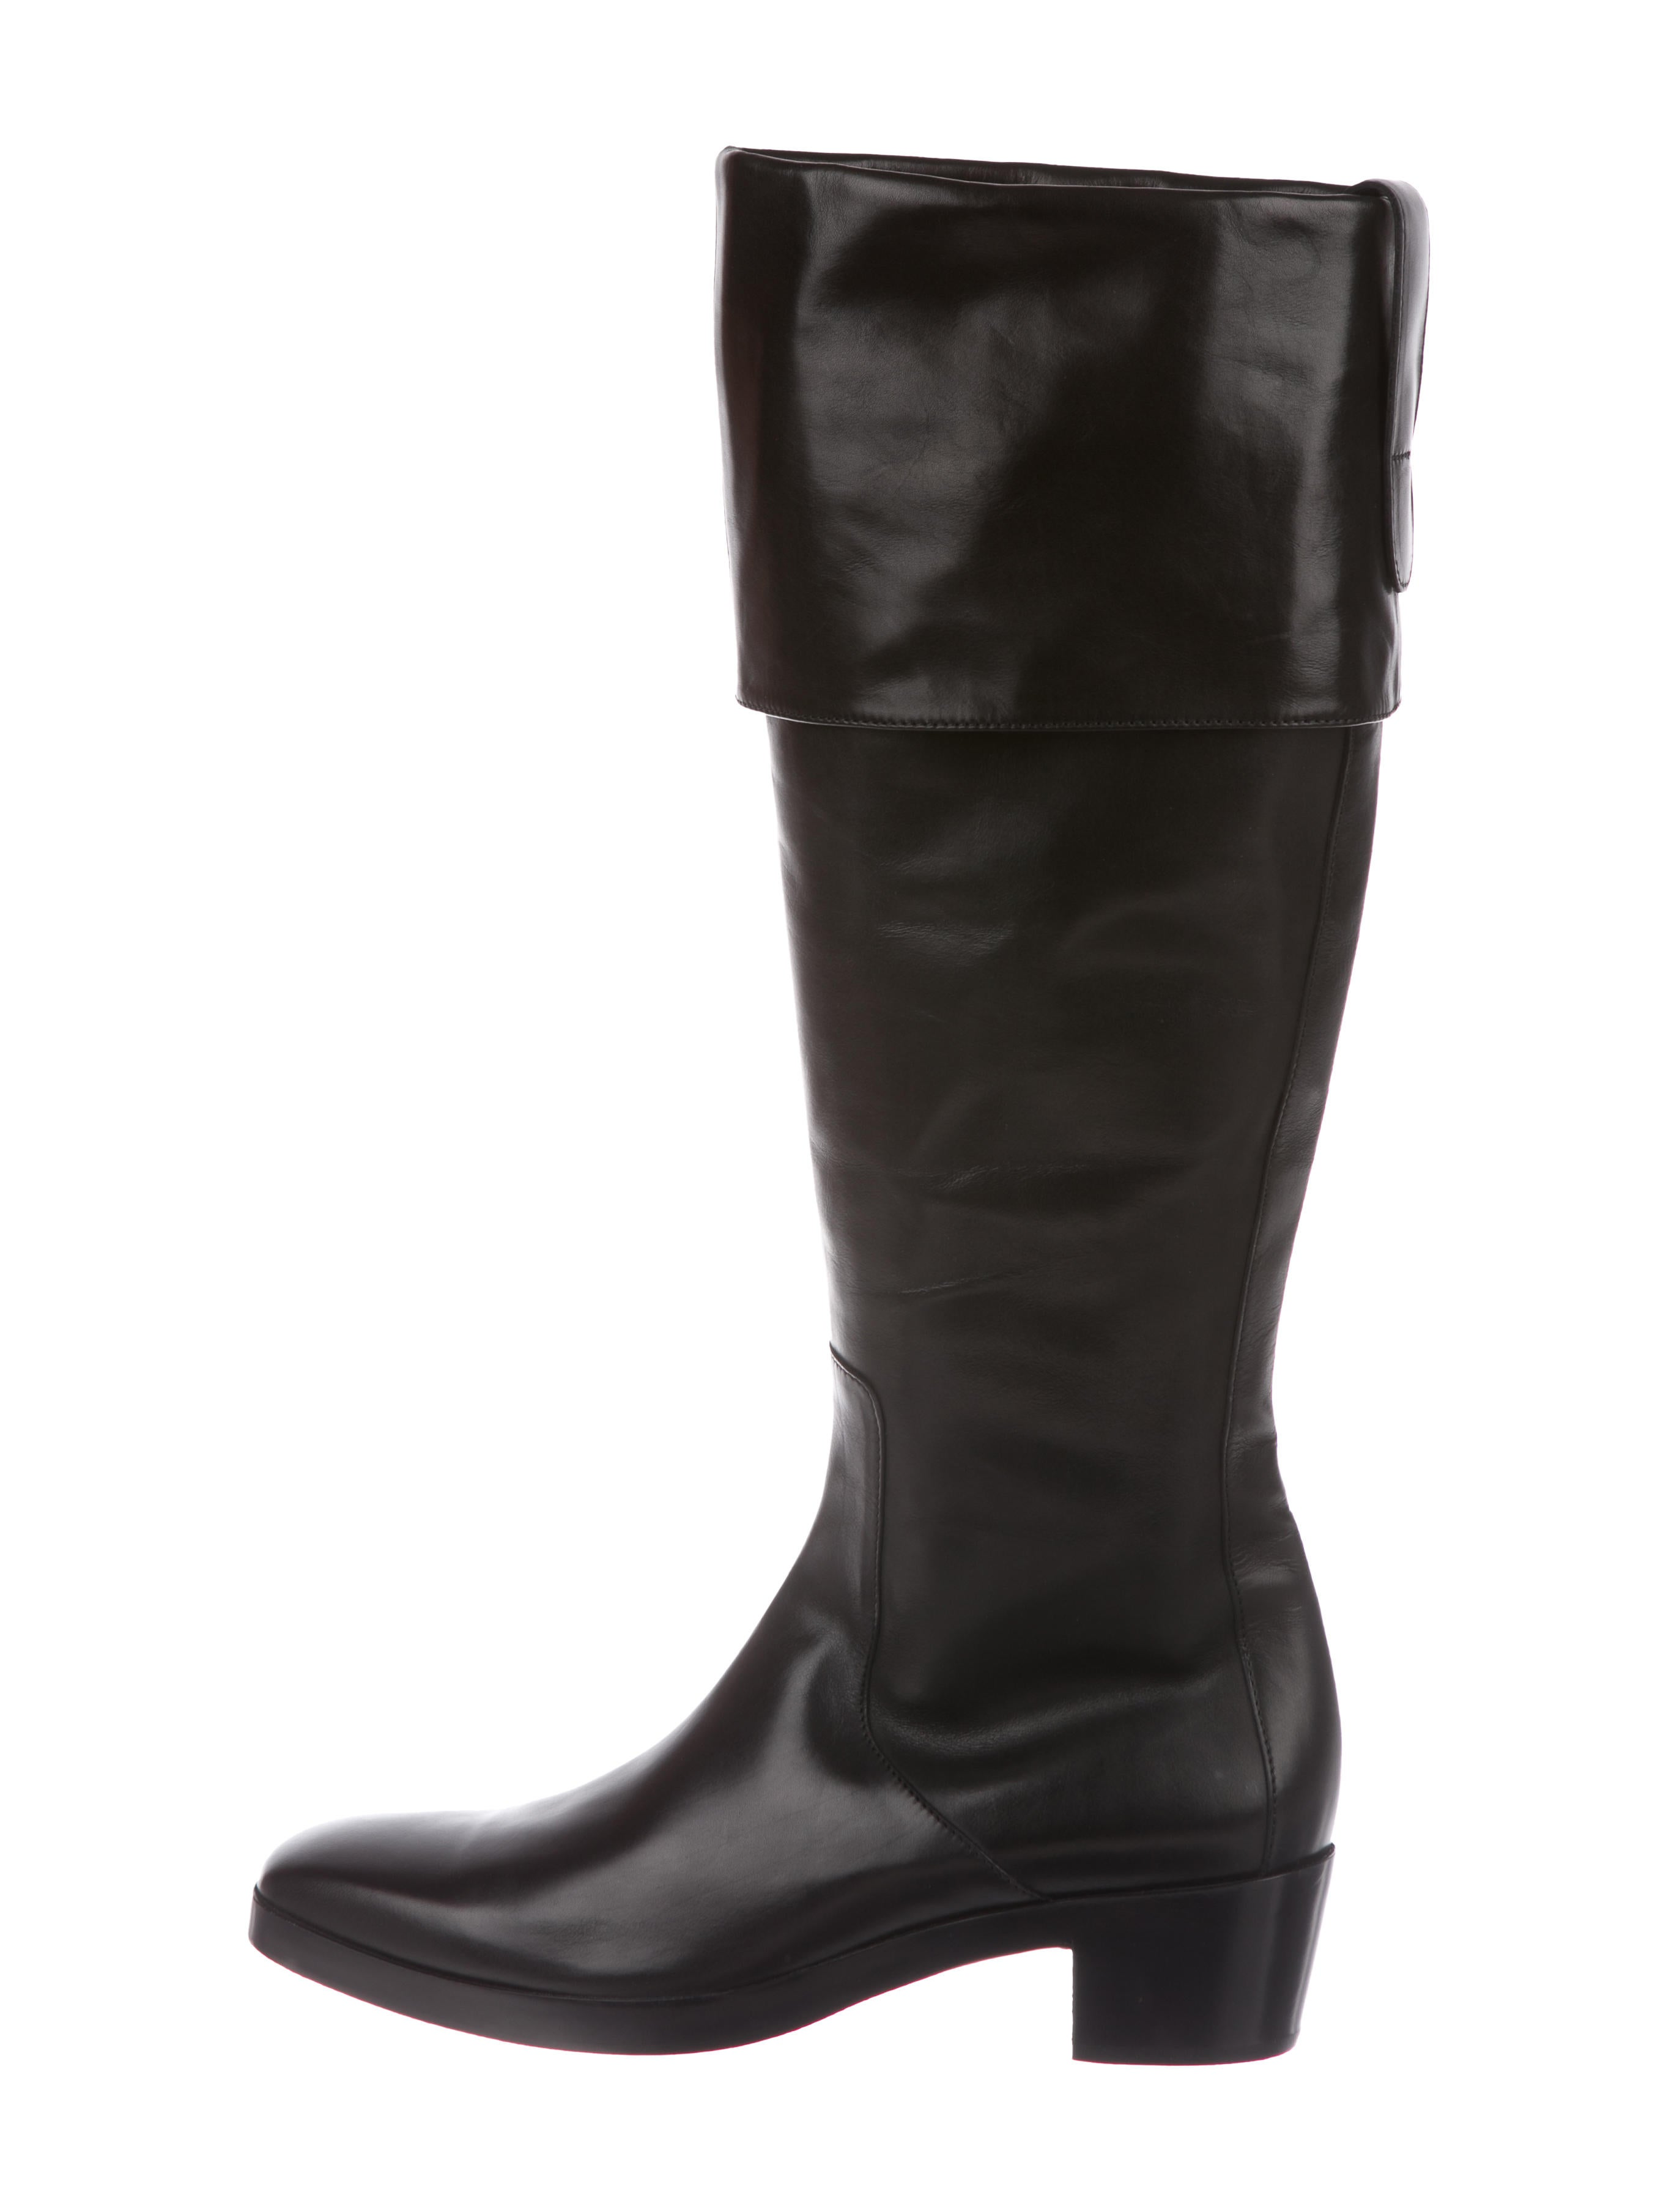 Balenciaga Leather Knee-High Boots w/ Tags new arrival for sale discount sast wRdBHSp